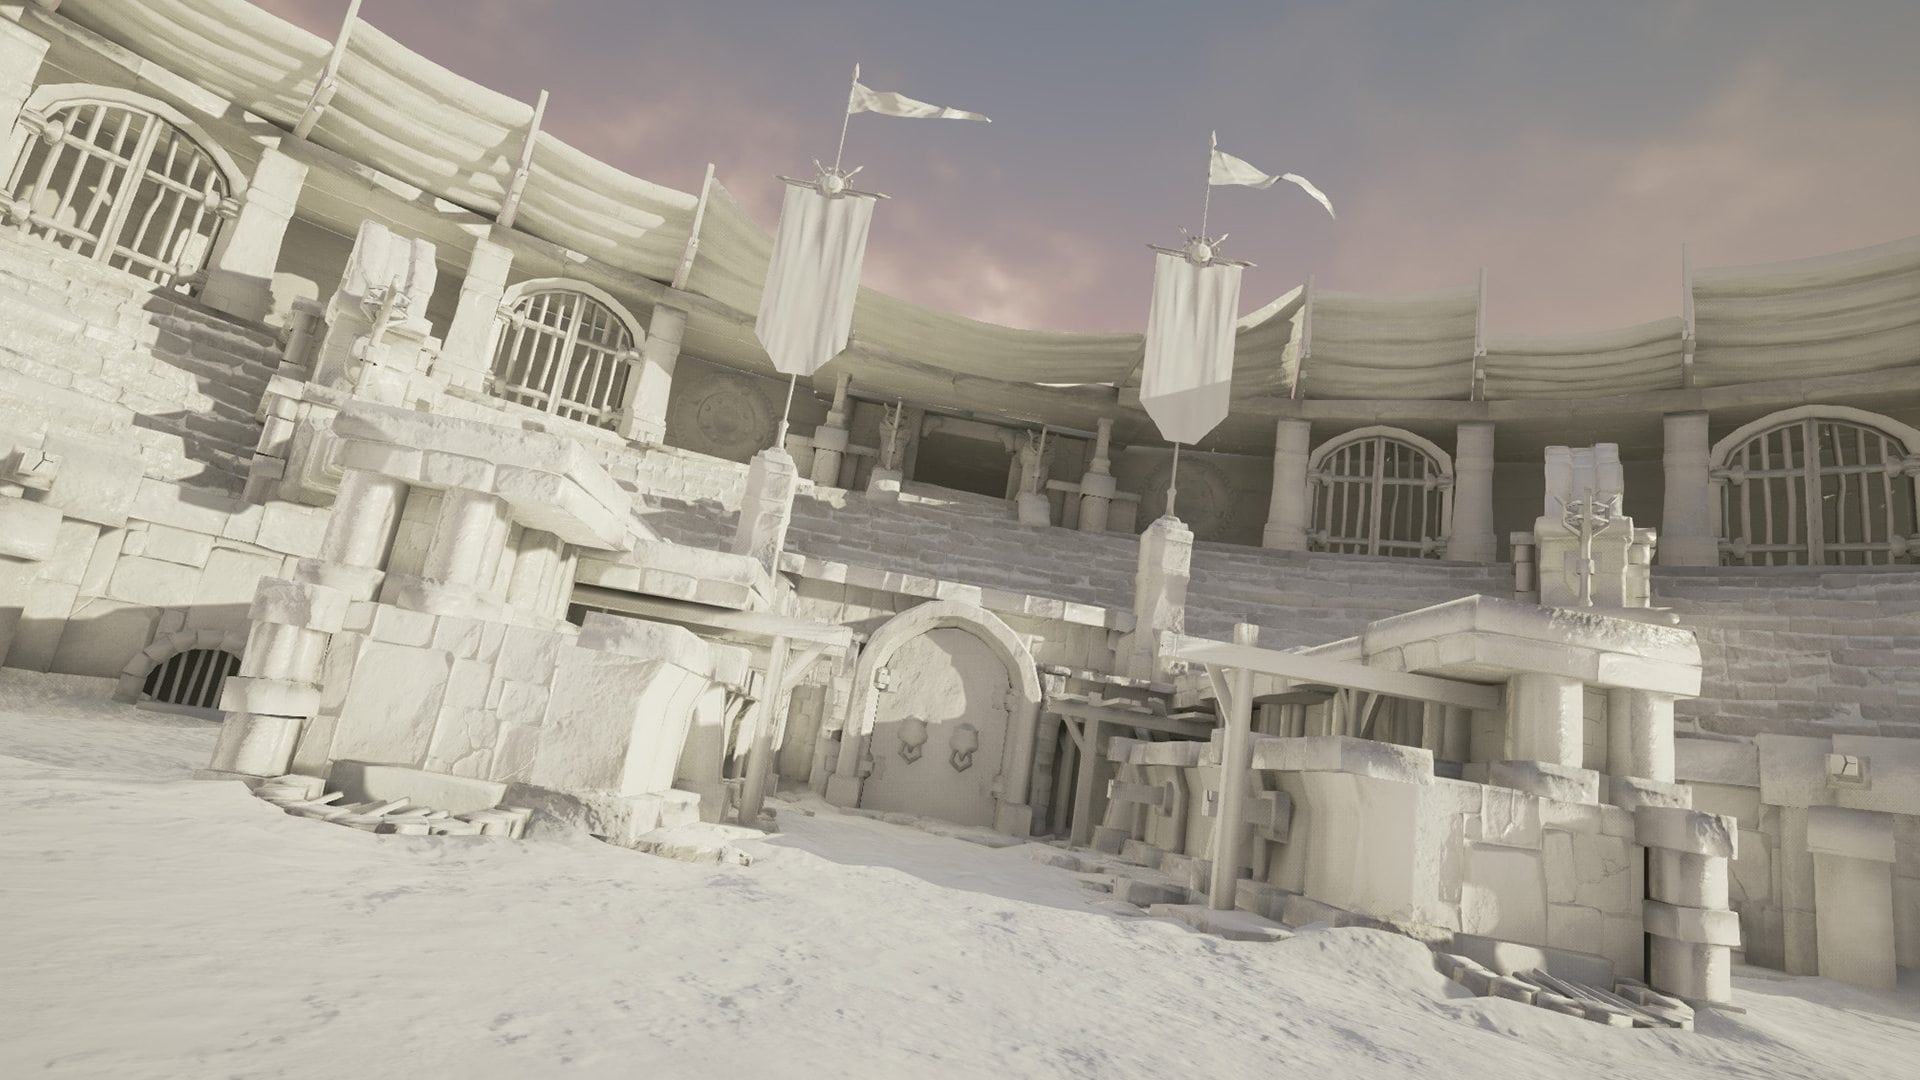 Image 04 - scene assembled in Unreal Engine; immediately showing more depth and atmosphere